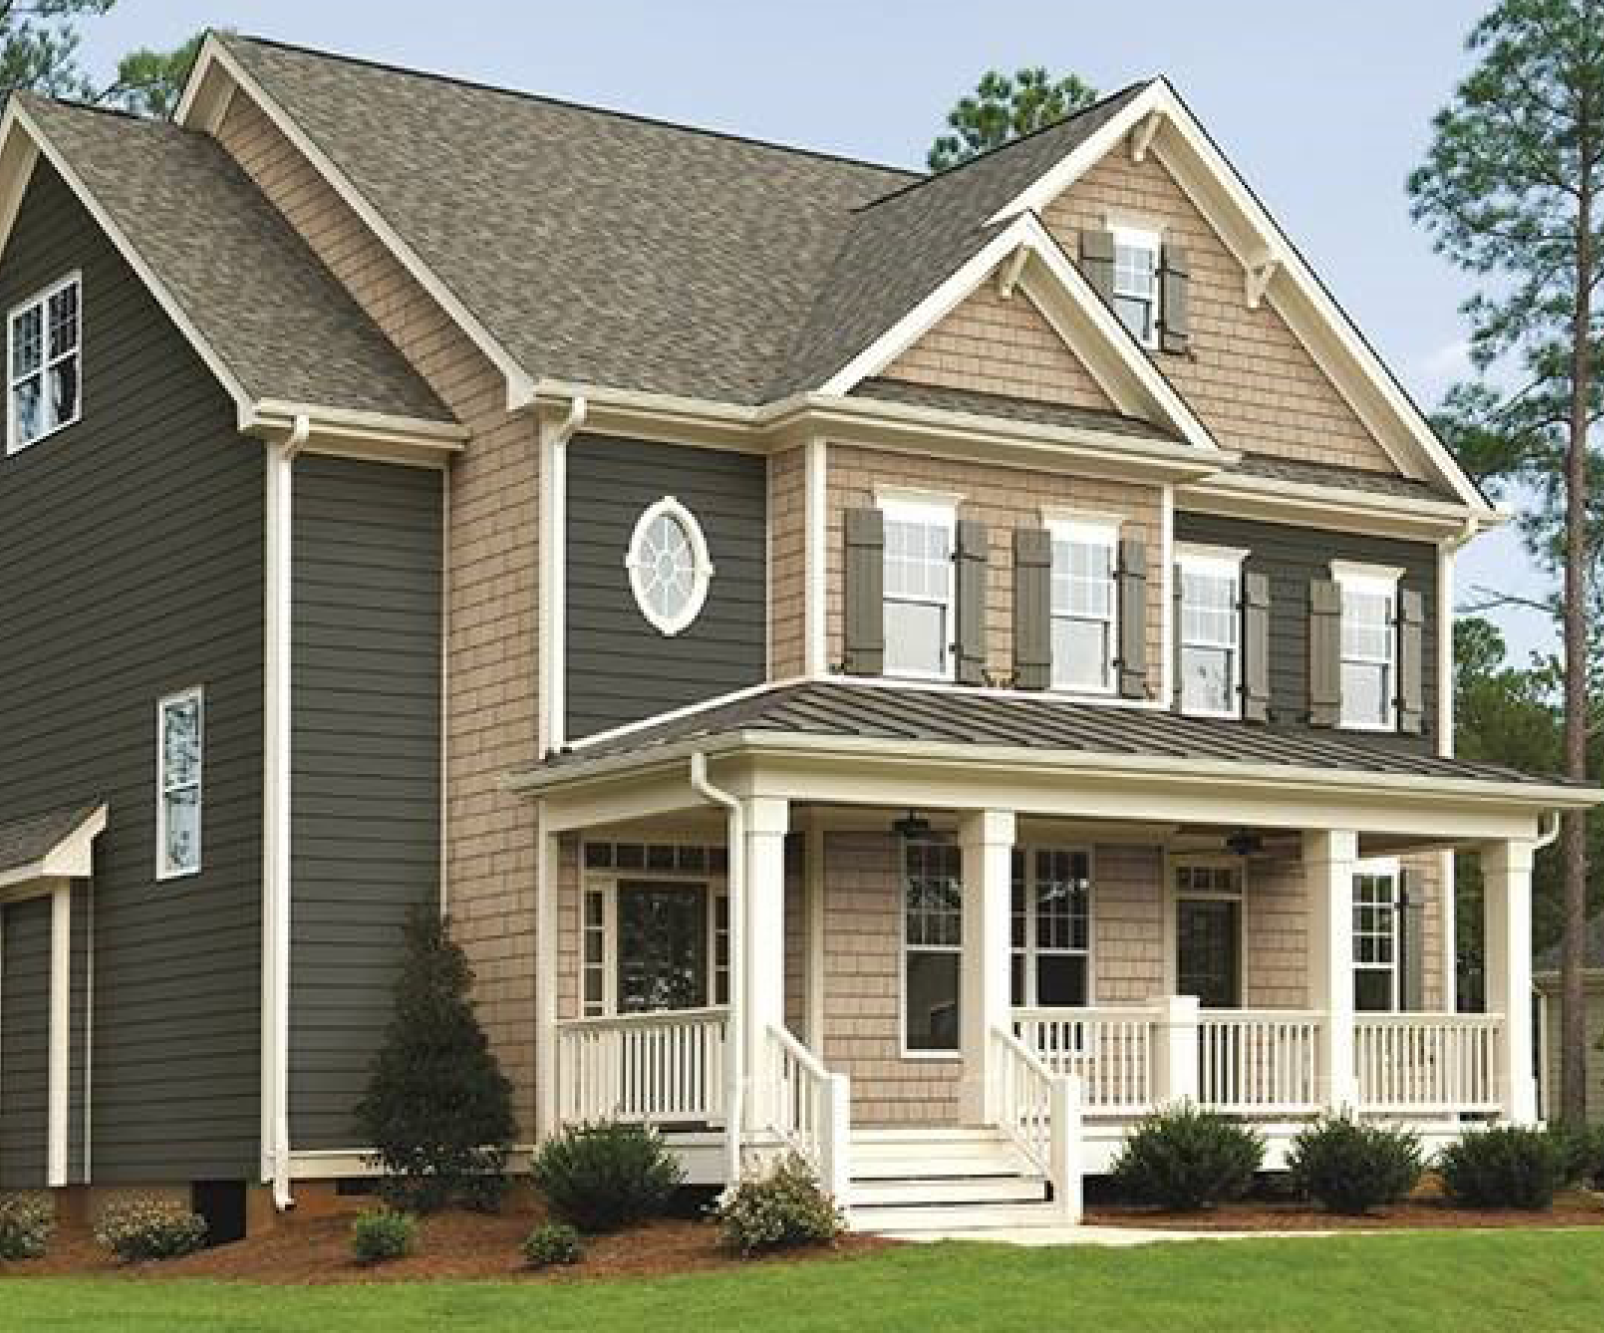 7 Exterior Trim Trends that Add Value to Your Home